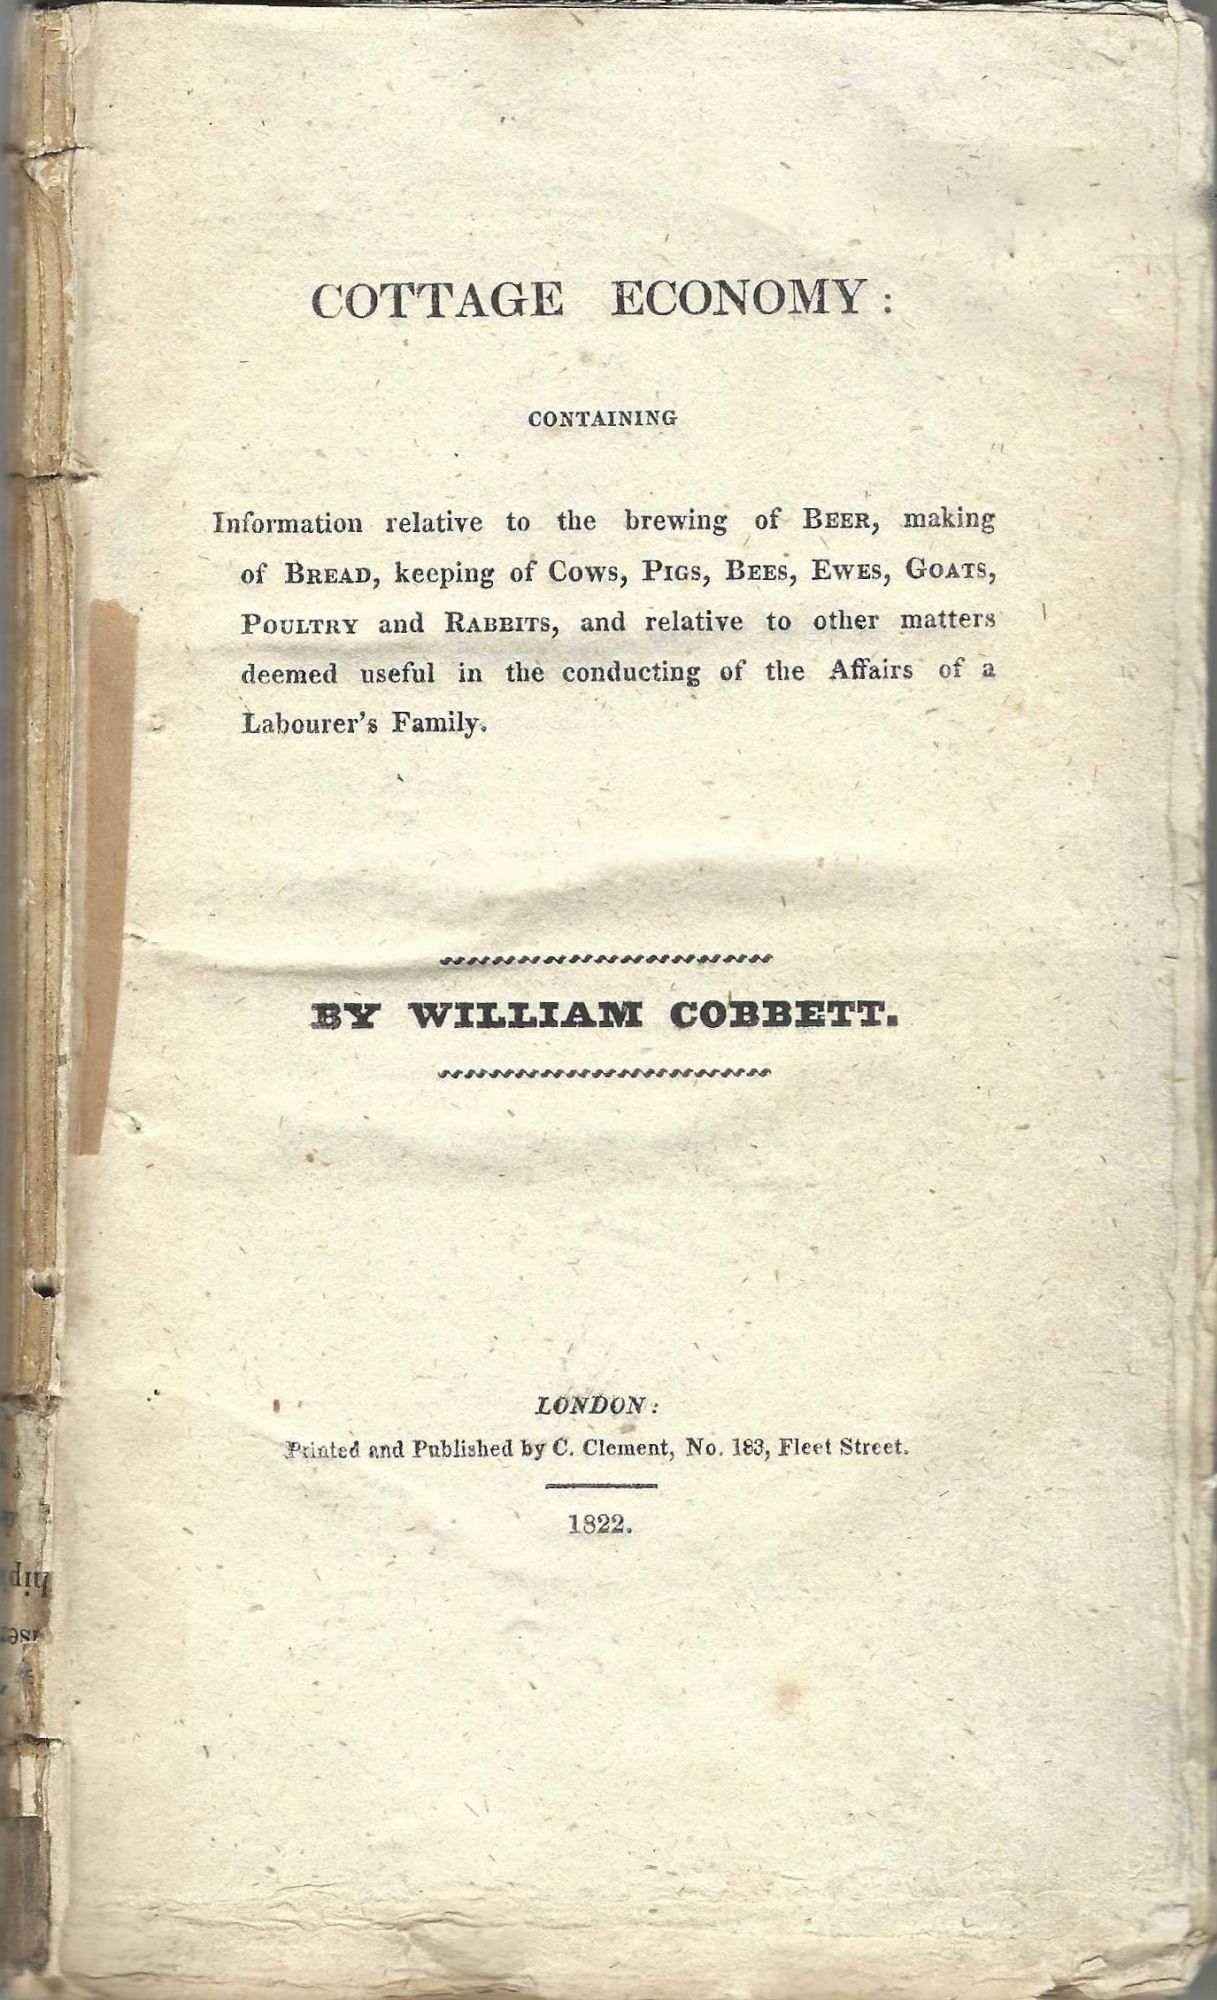 Cottage Economy: Containing information relative to the brewing of beer, making of bread, keeping of cows, pigs, bees, ewes, goats, poultry and rabbits, and relative to other matters deemed useful in the conducting of the affairs of a labourer's family. William Cobbett.